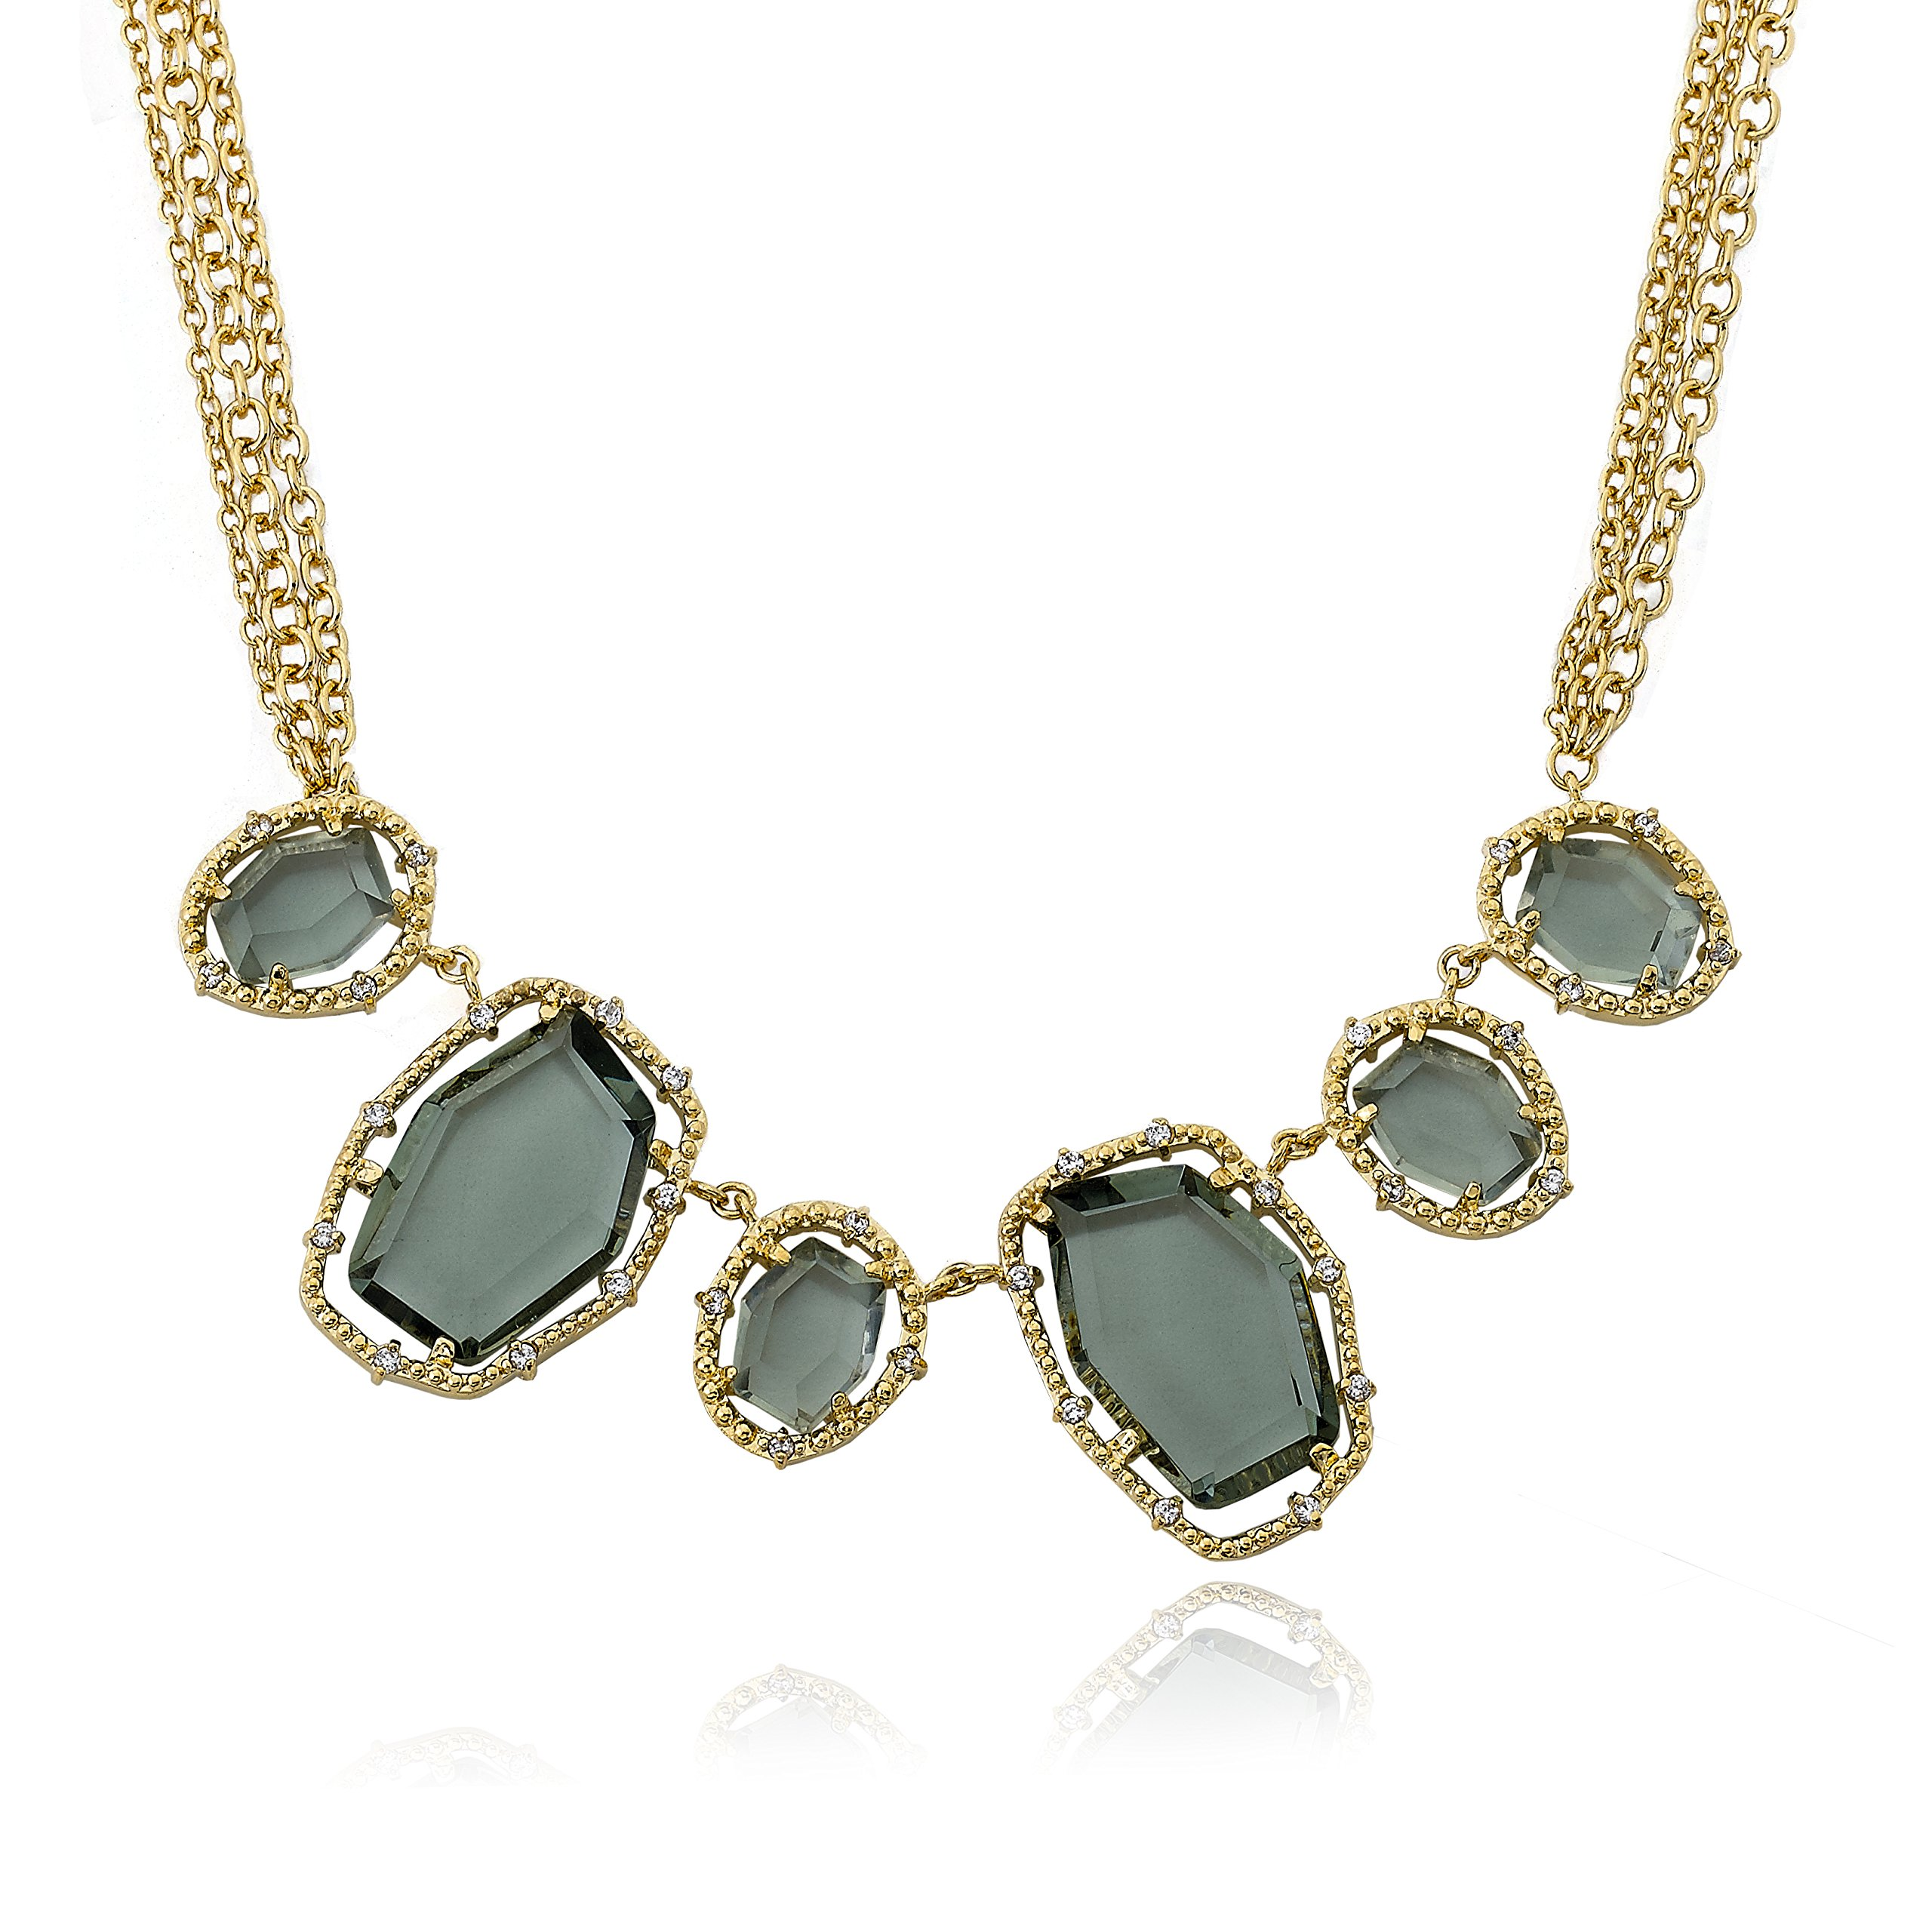 Riccova Sliced Glass 14k Gold-Plated Black Sliced Glass Center Chain Necklace 16''/2''